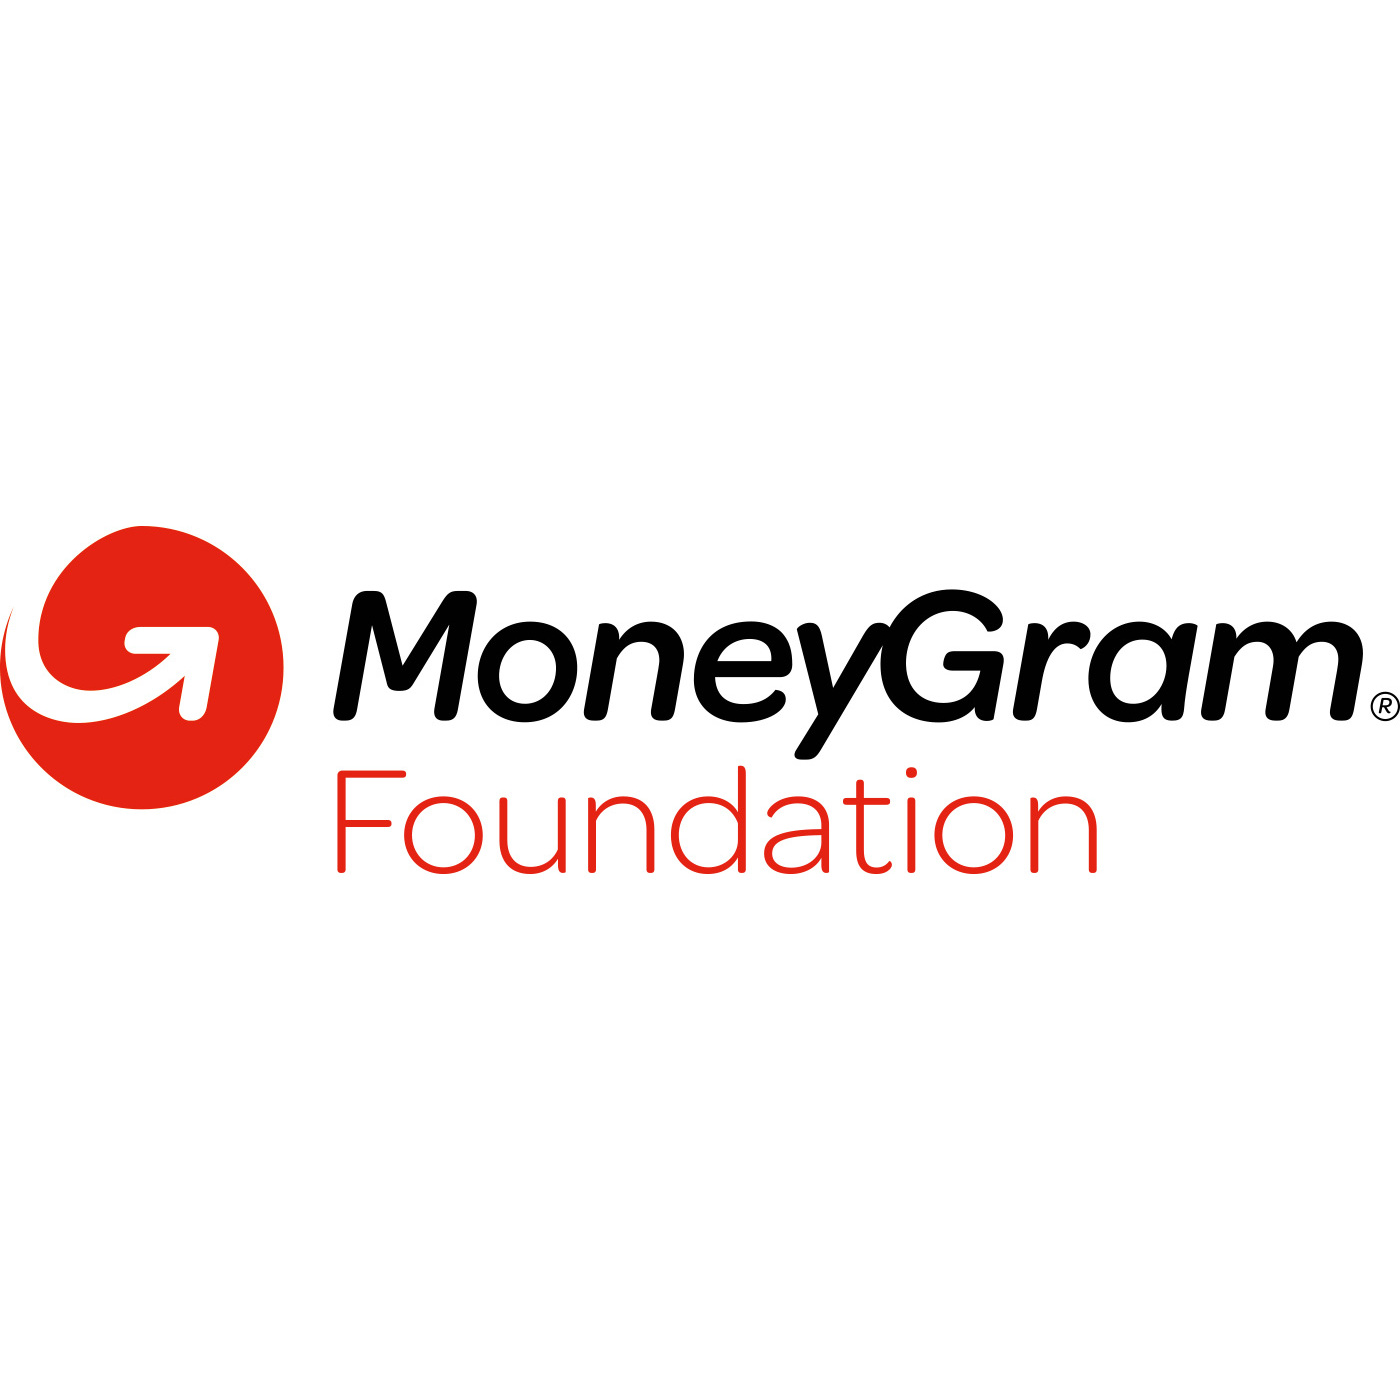 MoneyGram Foundation Kicks Off Literacy Project with The.